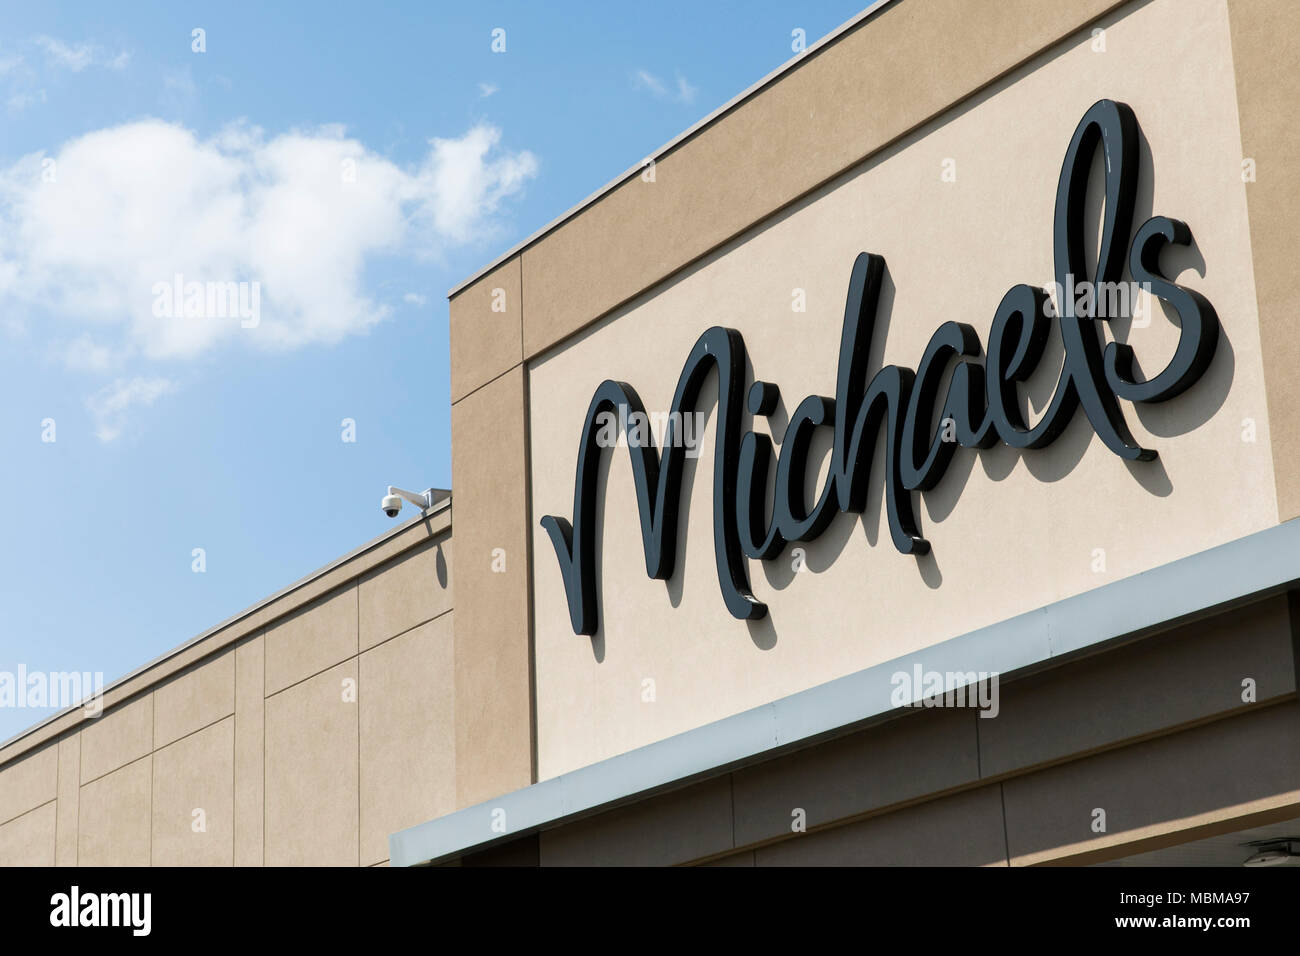 A logo sign outside of a Michaels retail store location in Silver Spring, Maryland on April 10, 2018. - Stock Image